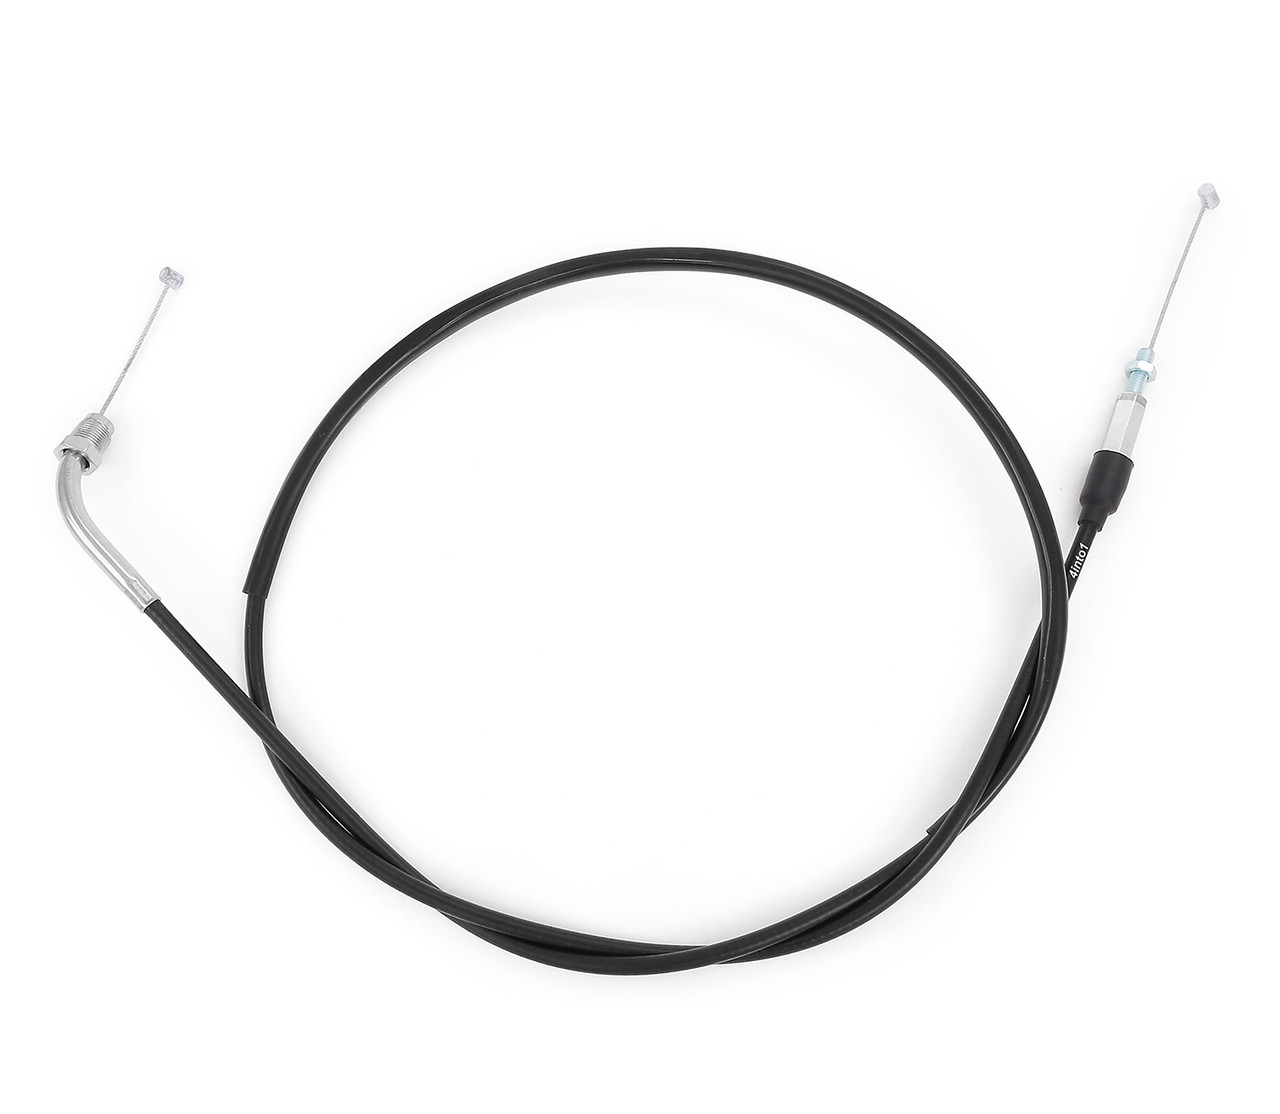 New Motion Pro Throttle Push Cable for Honda GL1100 Gold Wing 1980-1984